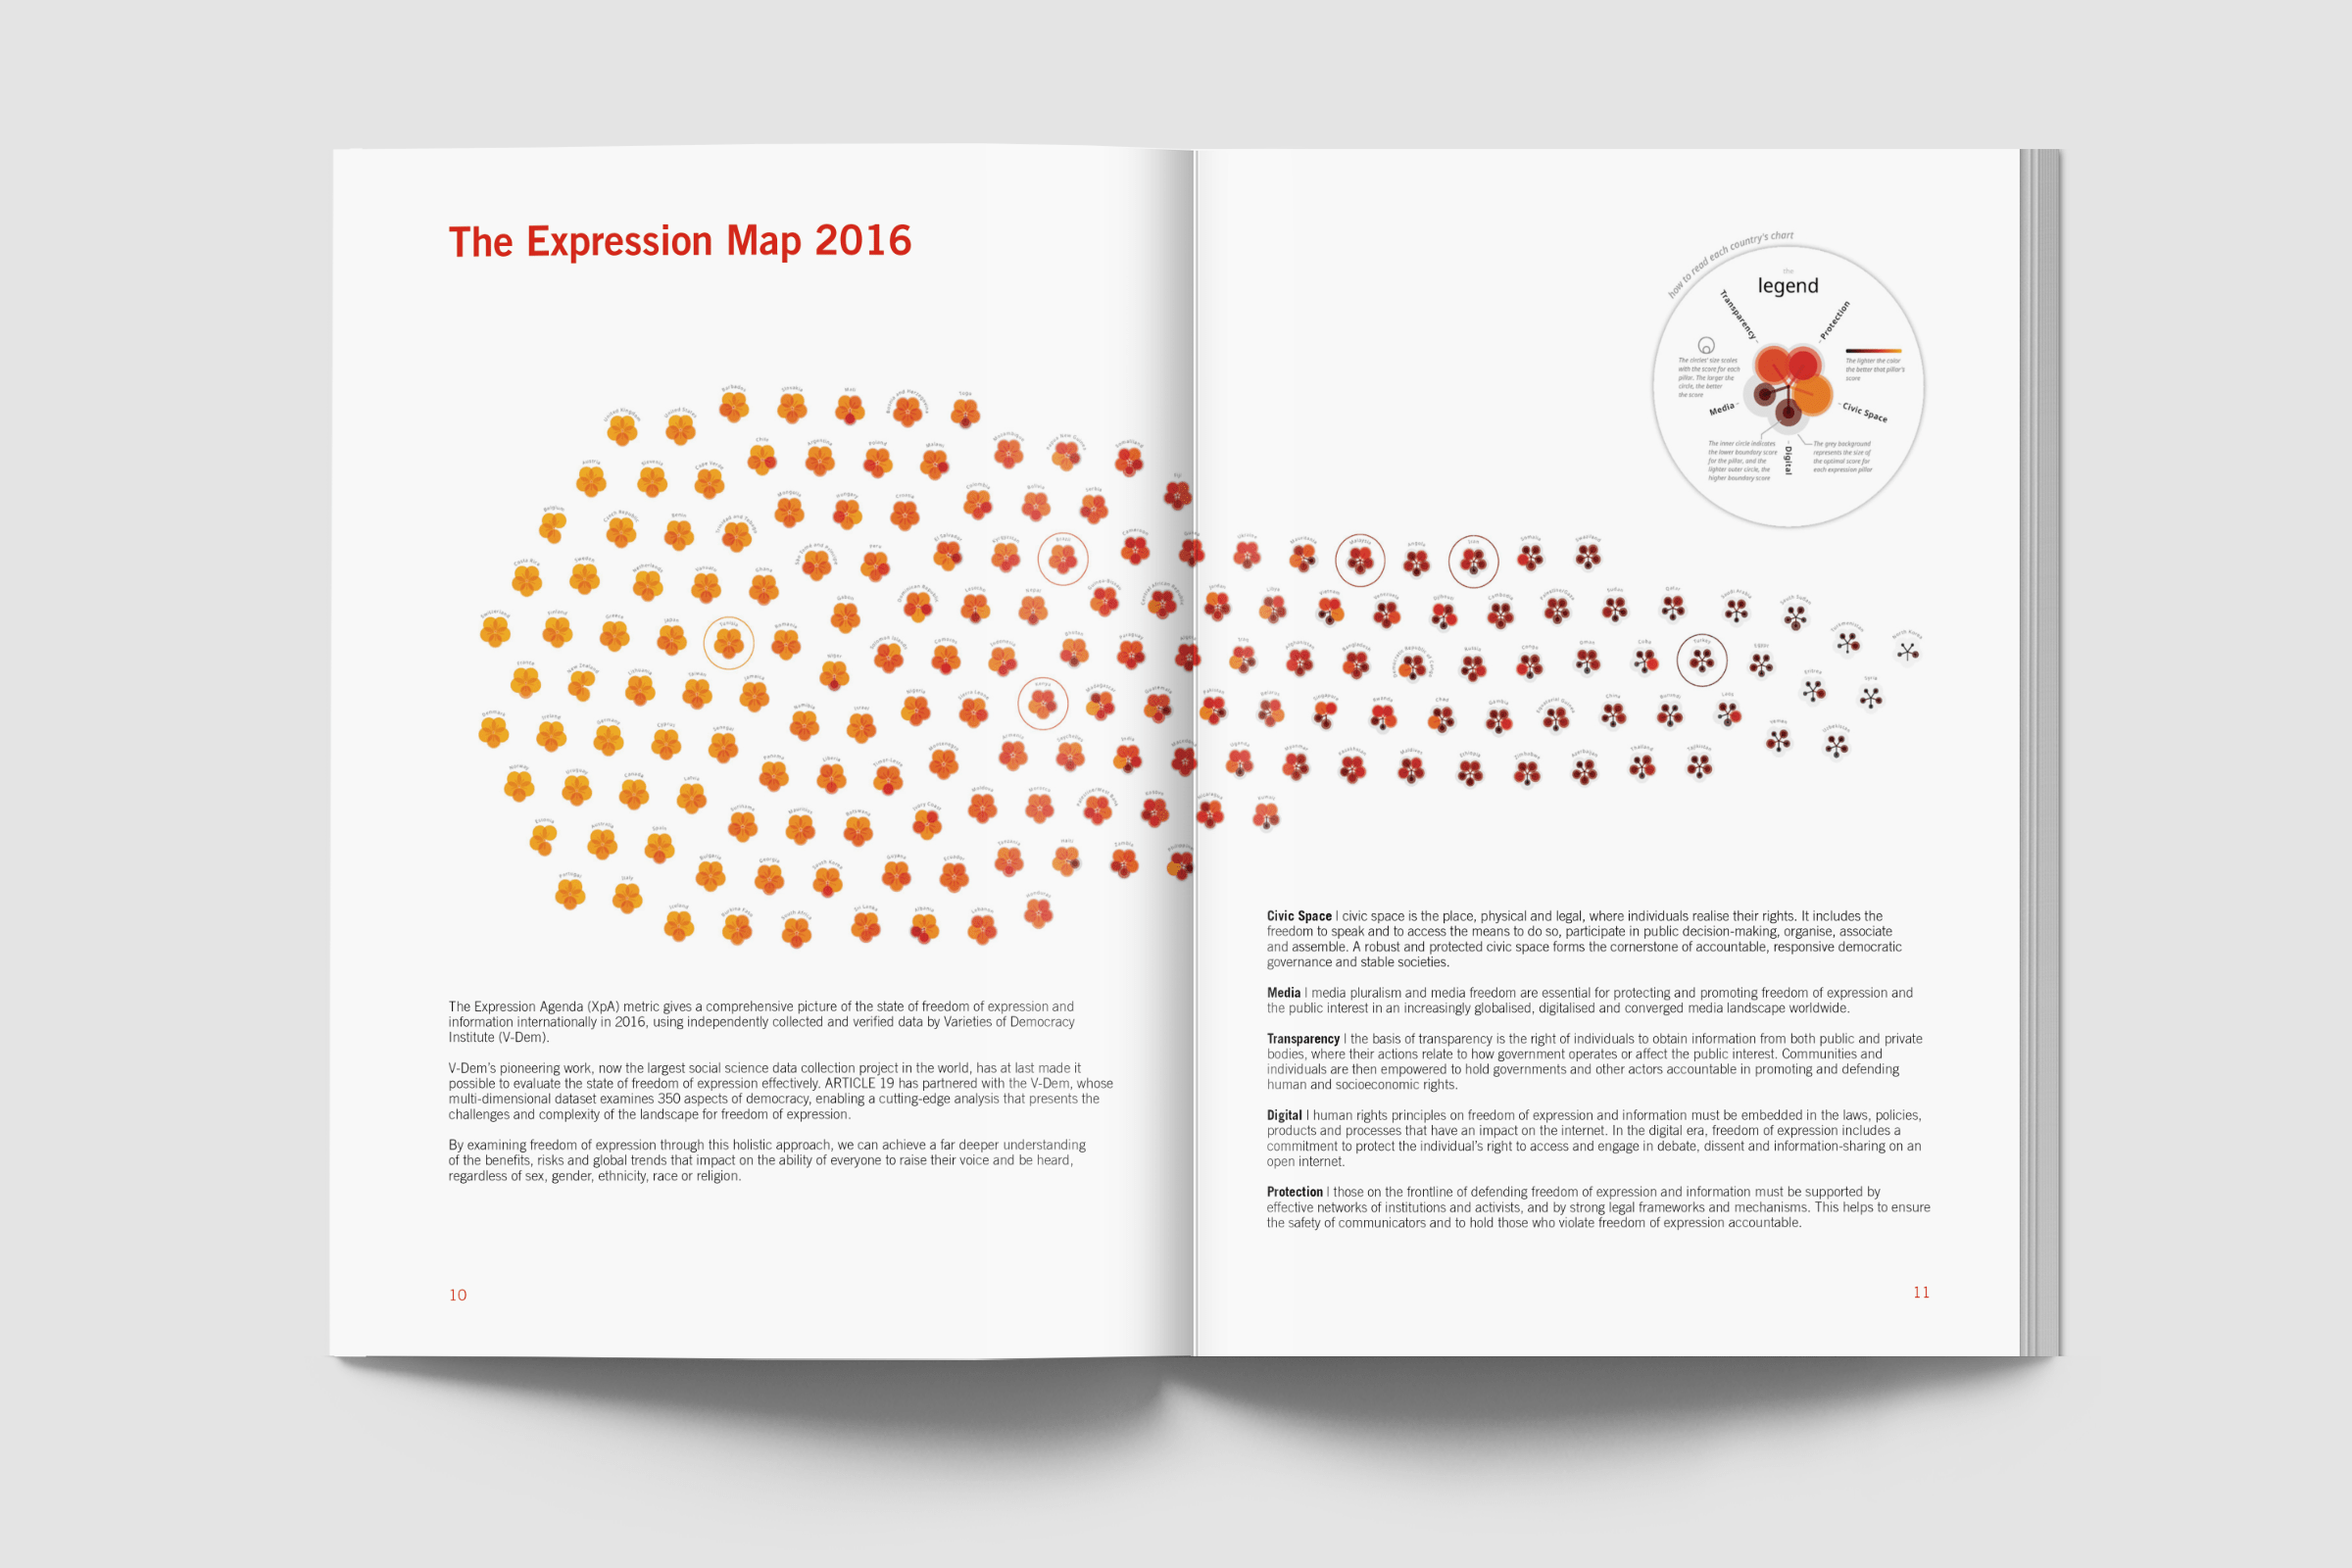 The Expression Agenda Report itself with the full visual spread across two pages